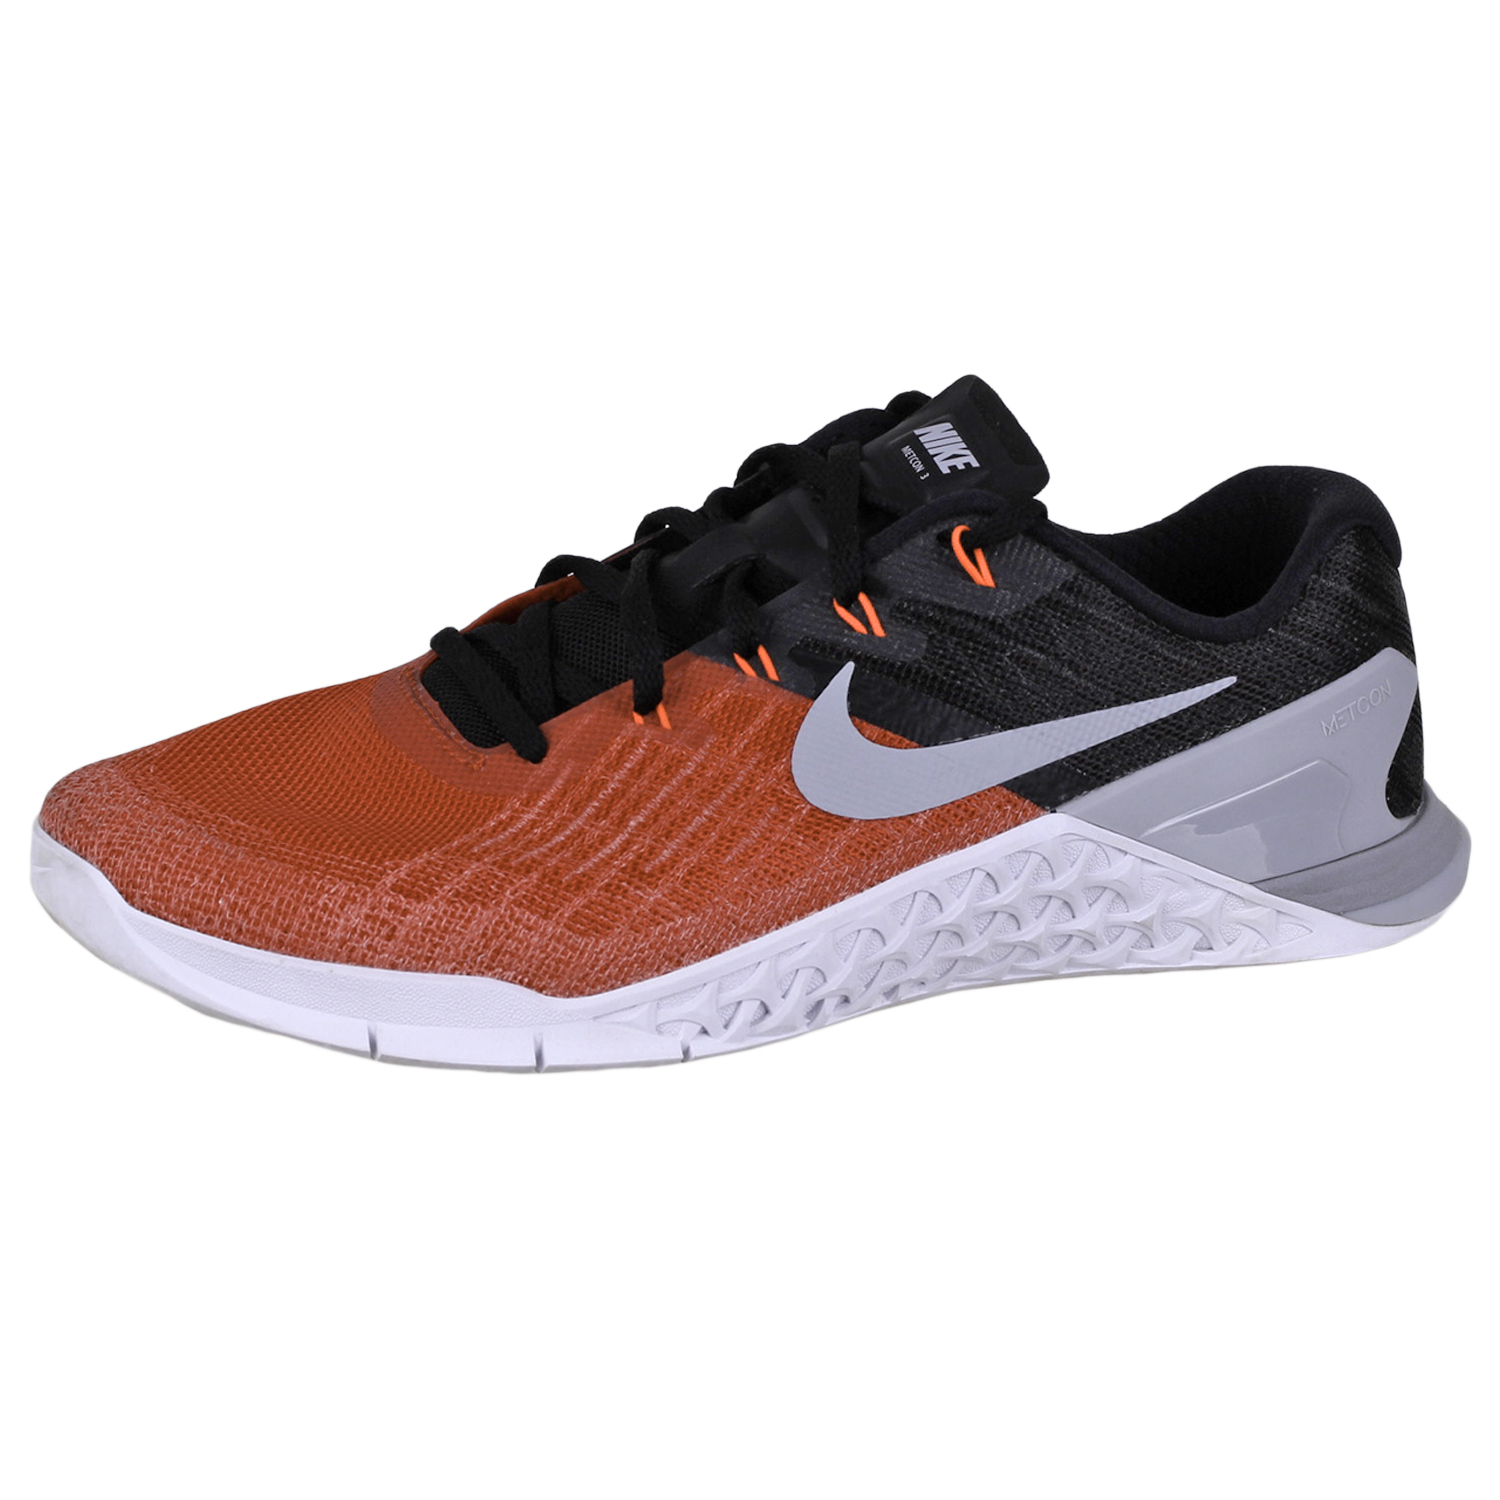 ac98b90e784 Details about Nike Men s Metcon 3 Shoes 852928 Red Black White Wolf Grey 8.5